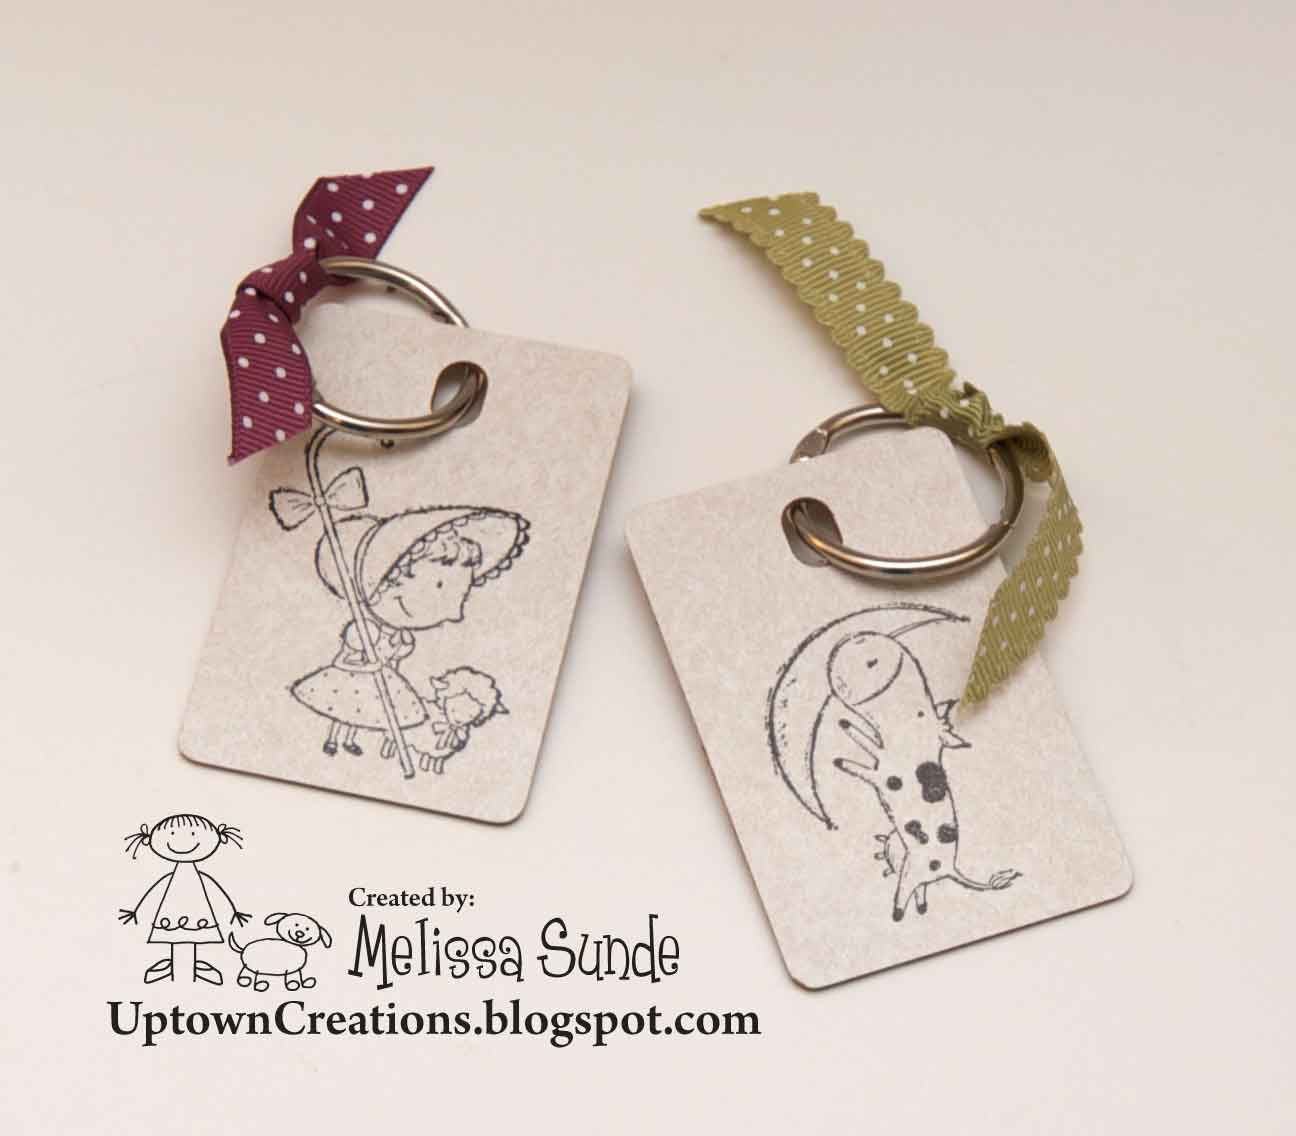 Church Nursery Diaper Bag Tags http://www.uptowncreations.com/2012/09/diaper-bag-name-tag-nursery-times.html